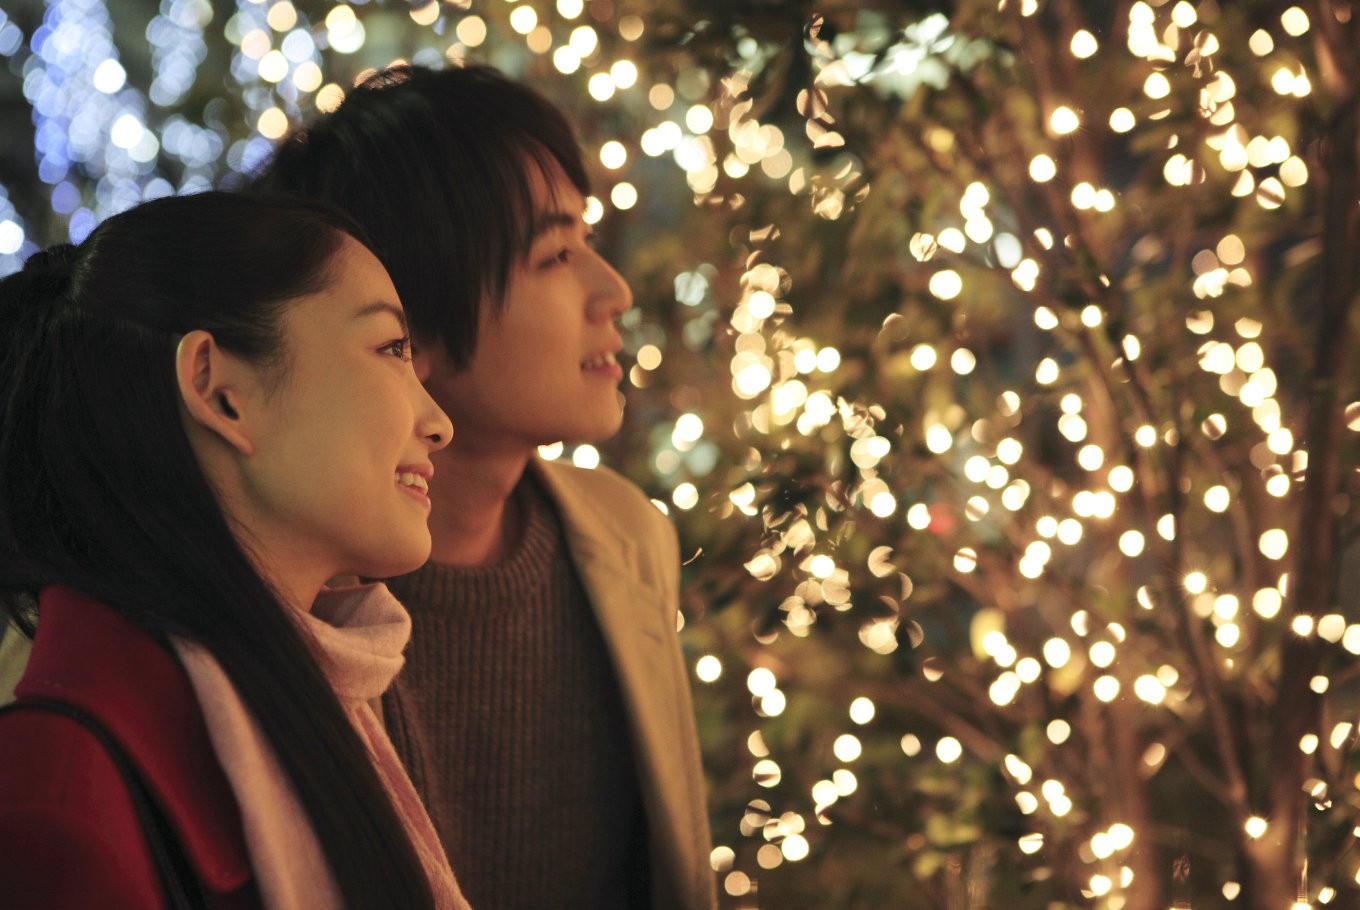 Japanese single men protest against romantic Christmas Eve